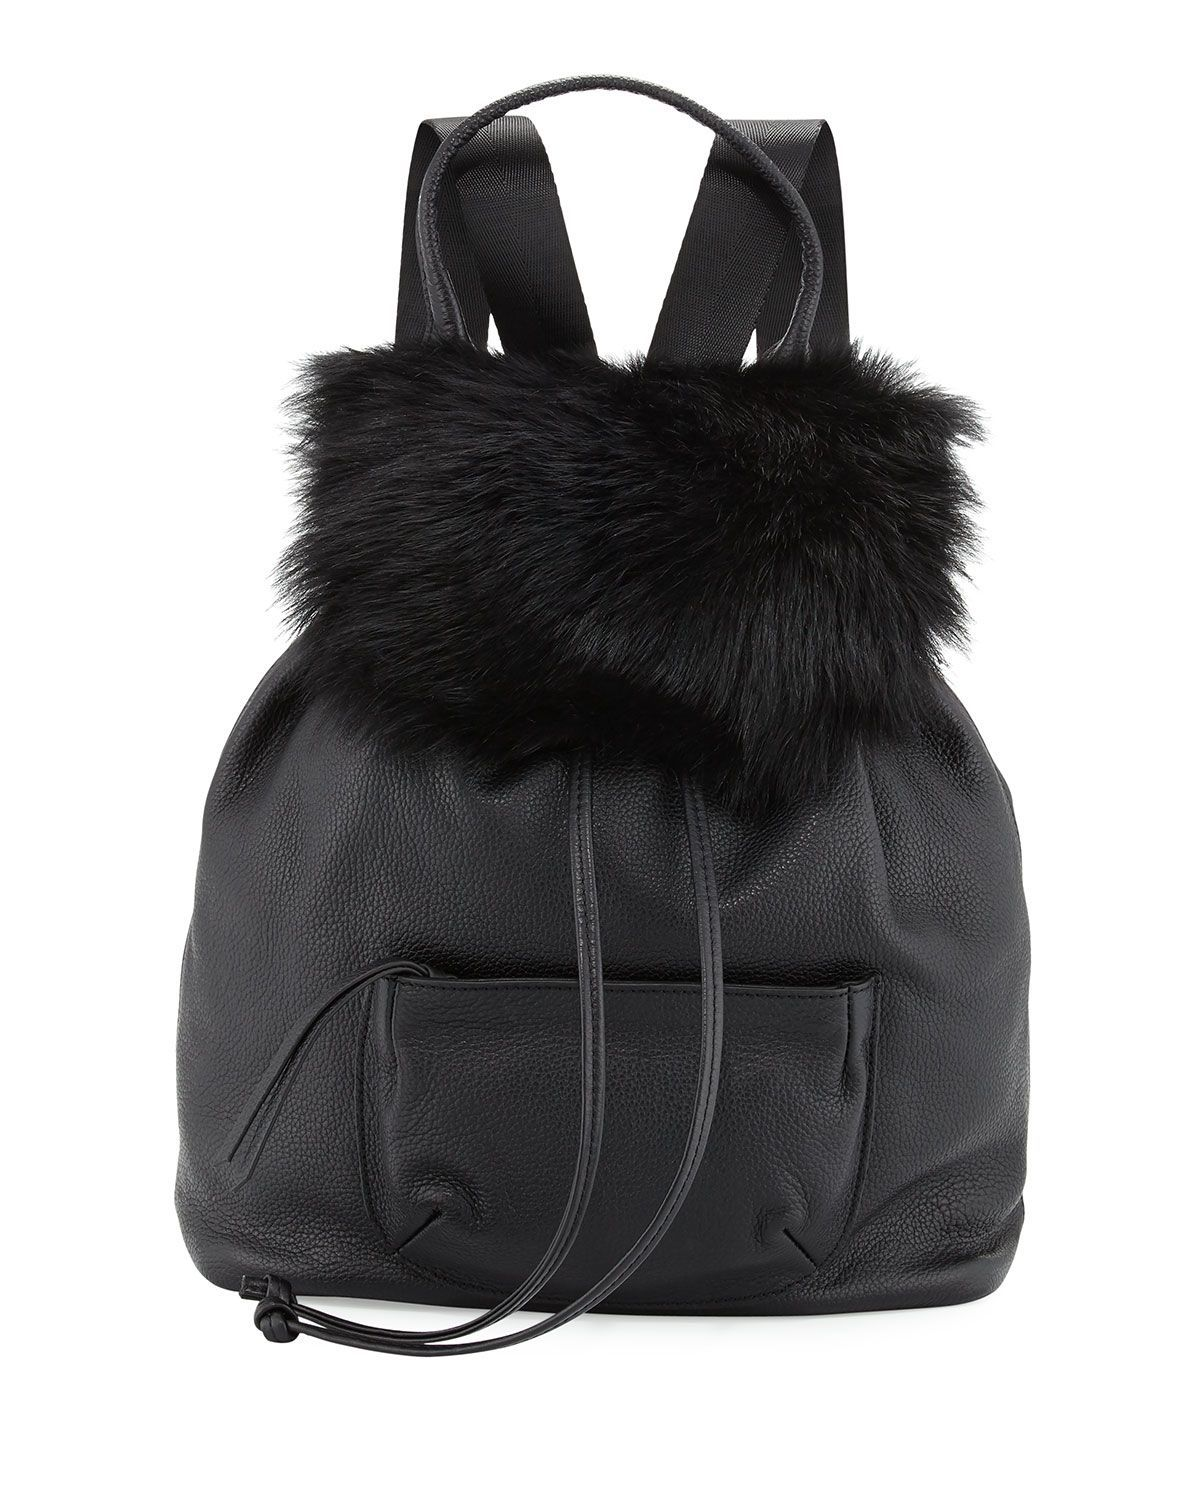 Langley Fur-Flap Leather Backpack, Black